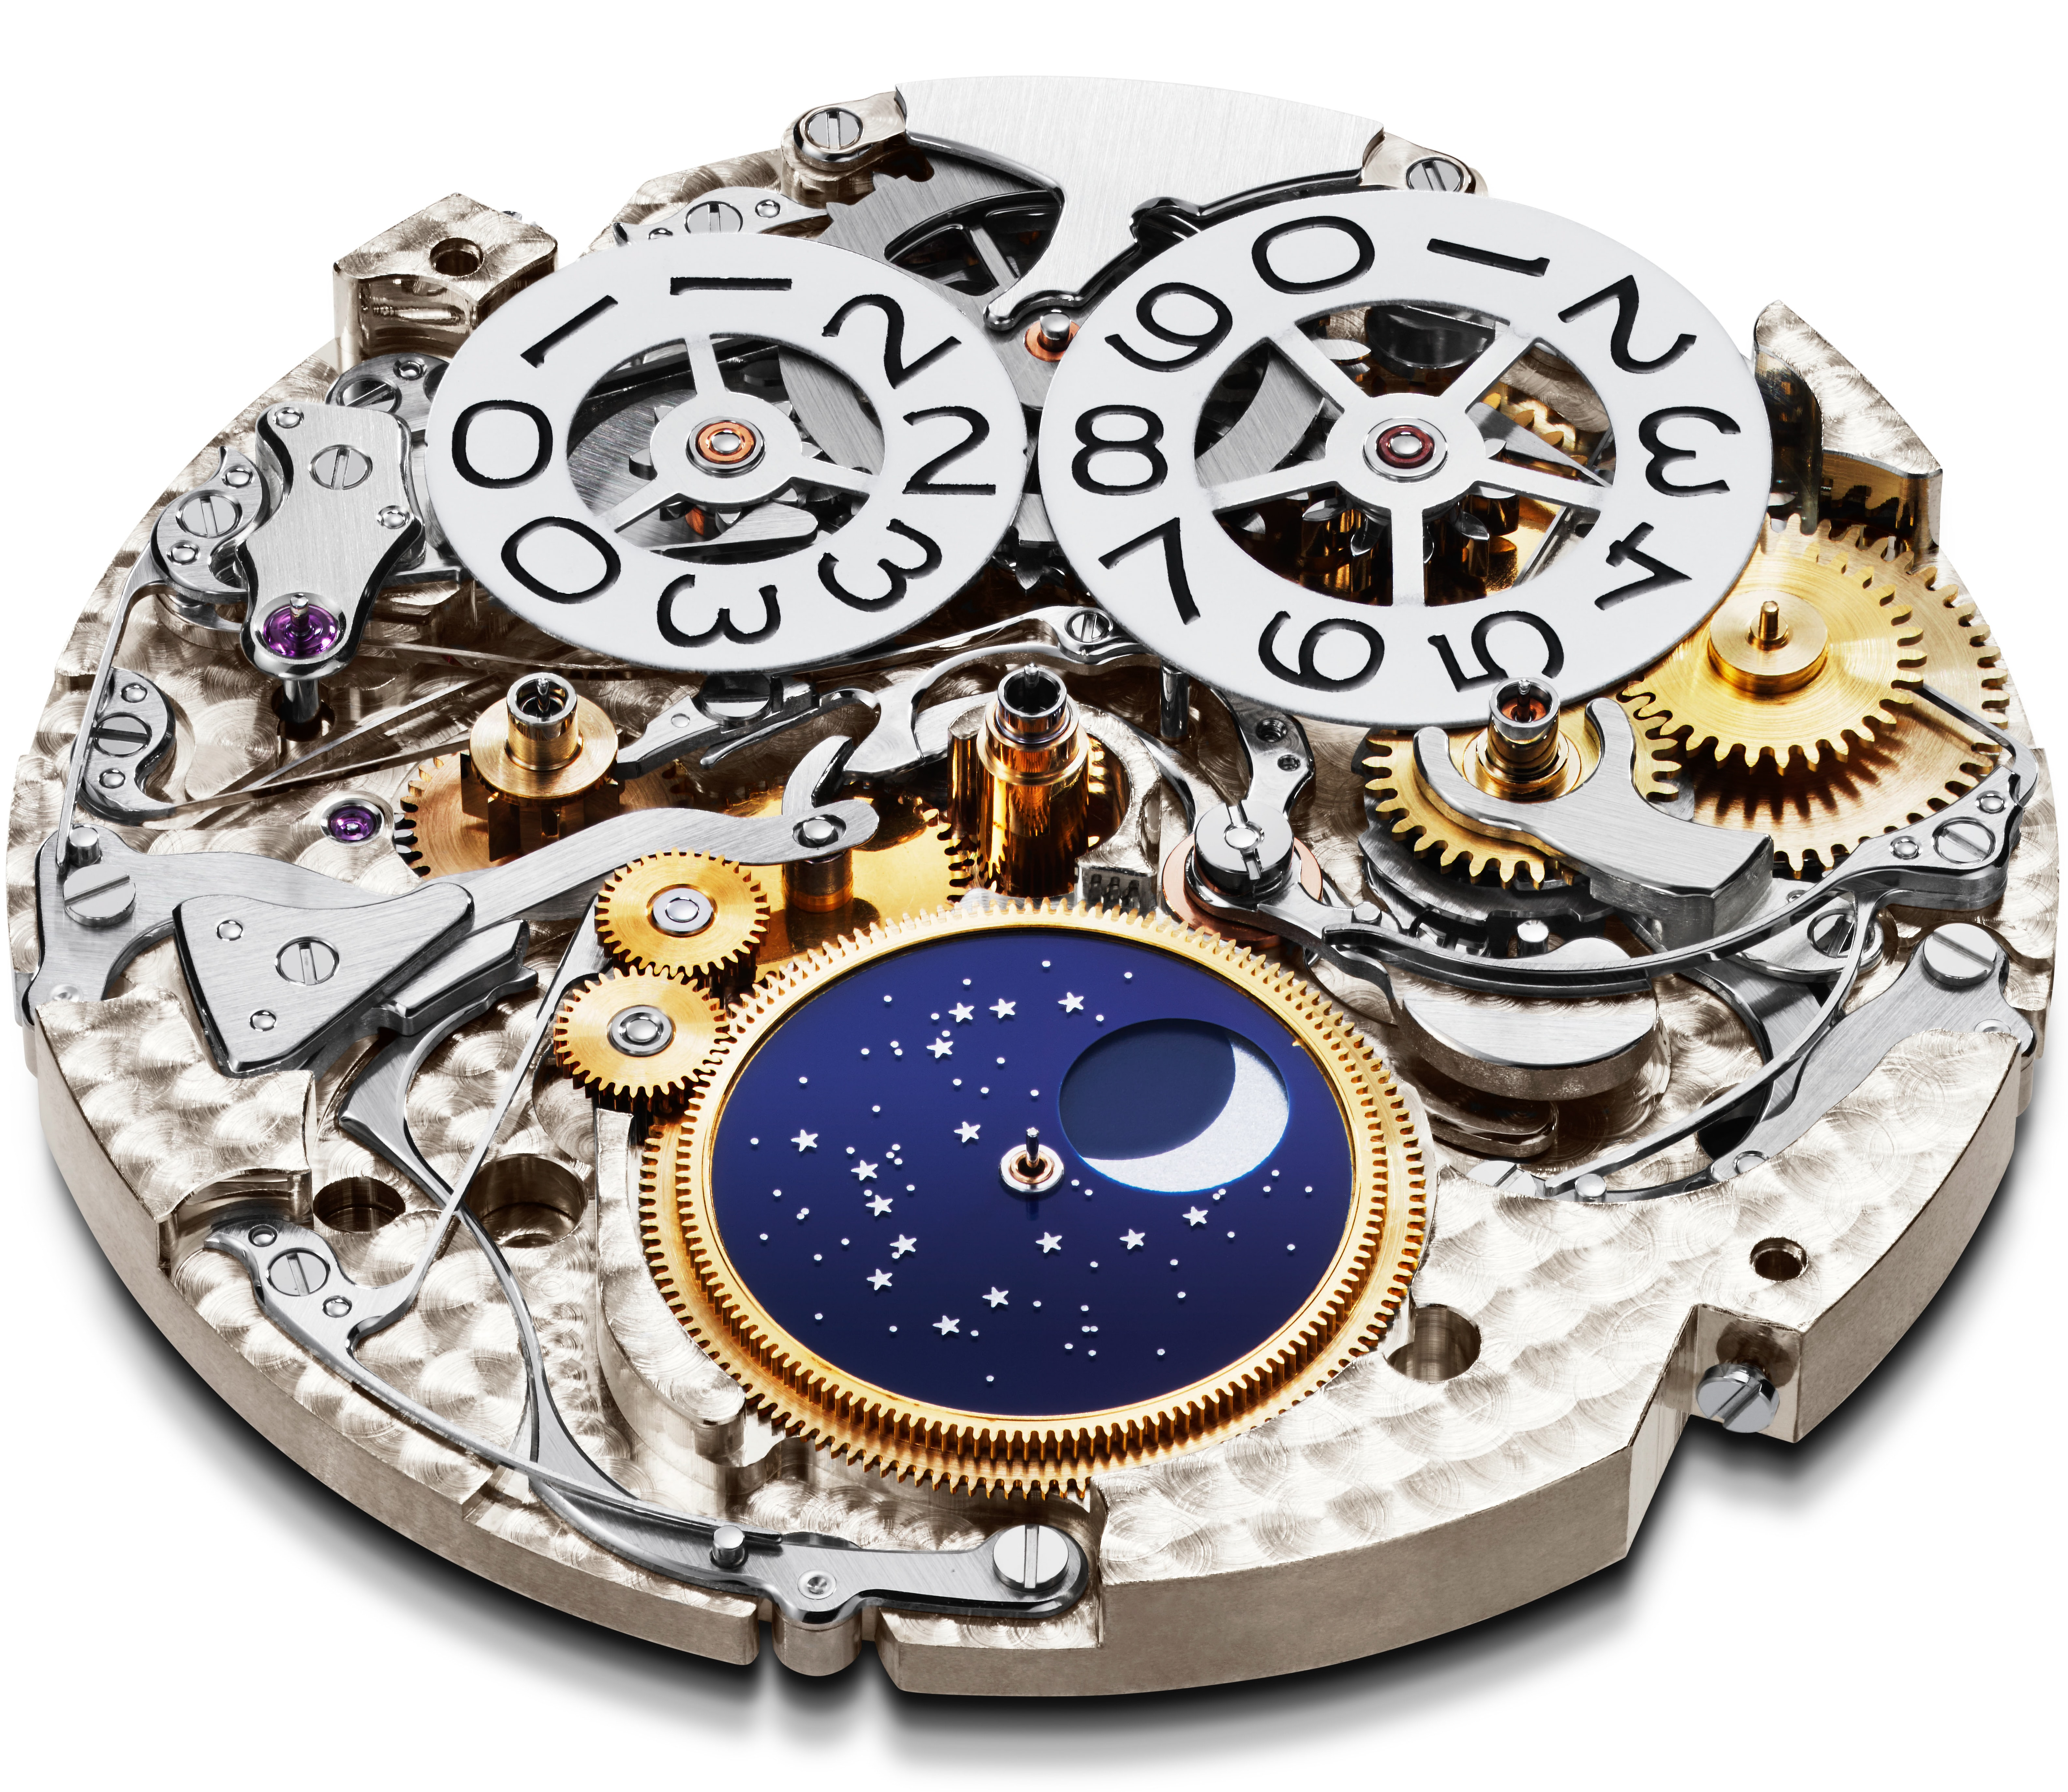 Introducing: The Chopard L.U.C. Perpetual Chrono Introducing: The Chopard L.U.C. Perpetual Chrono L